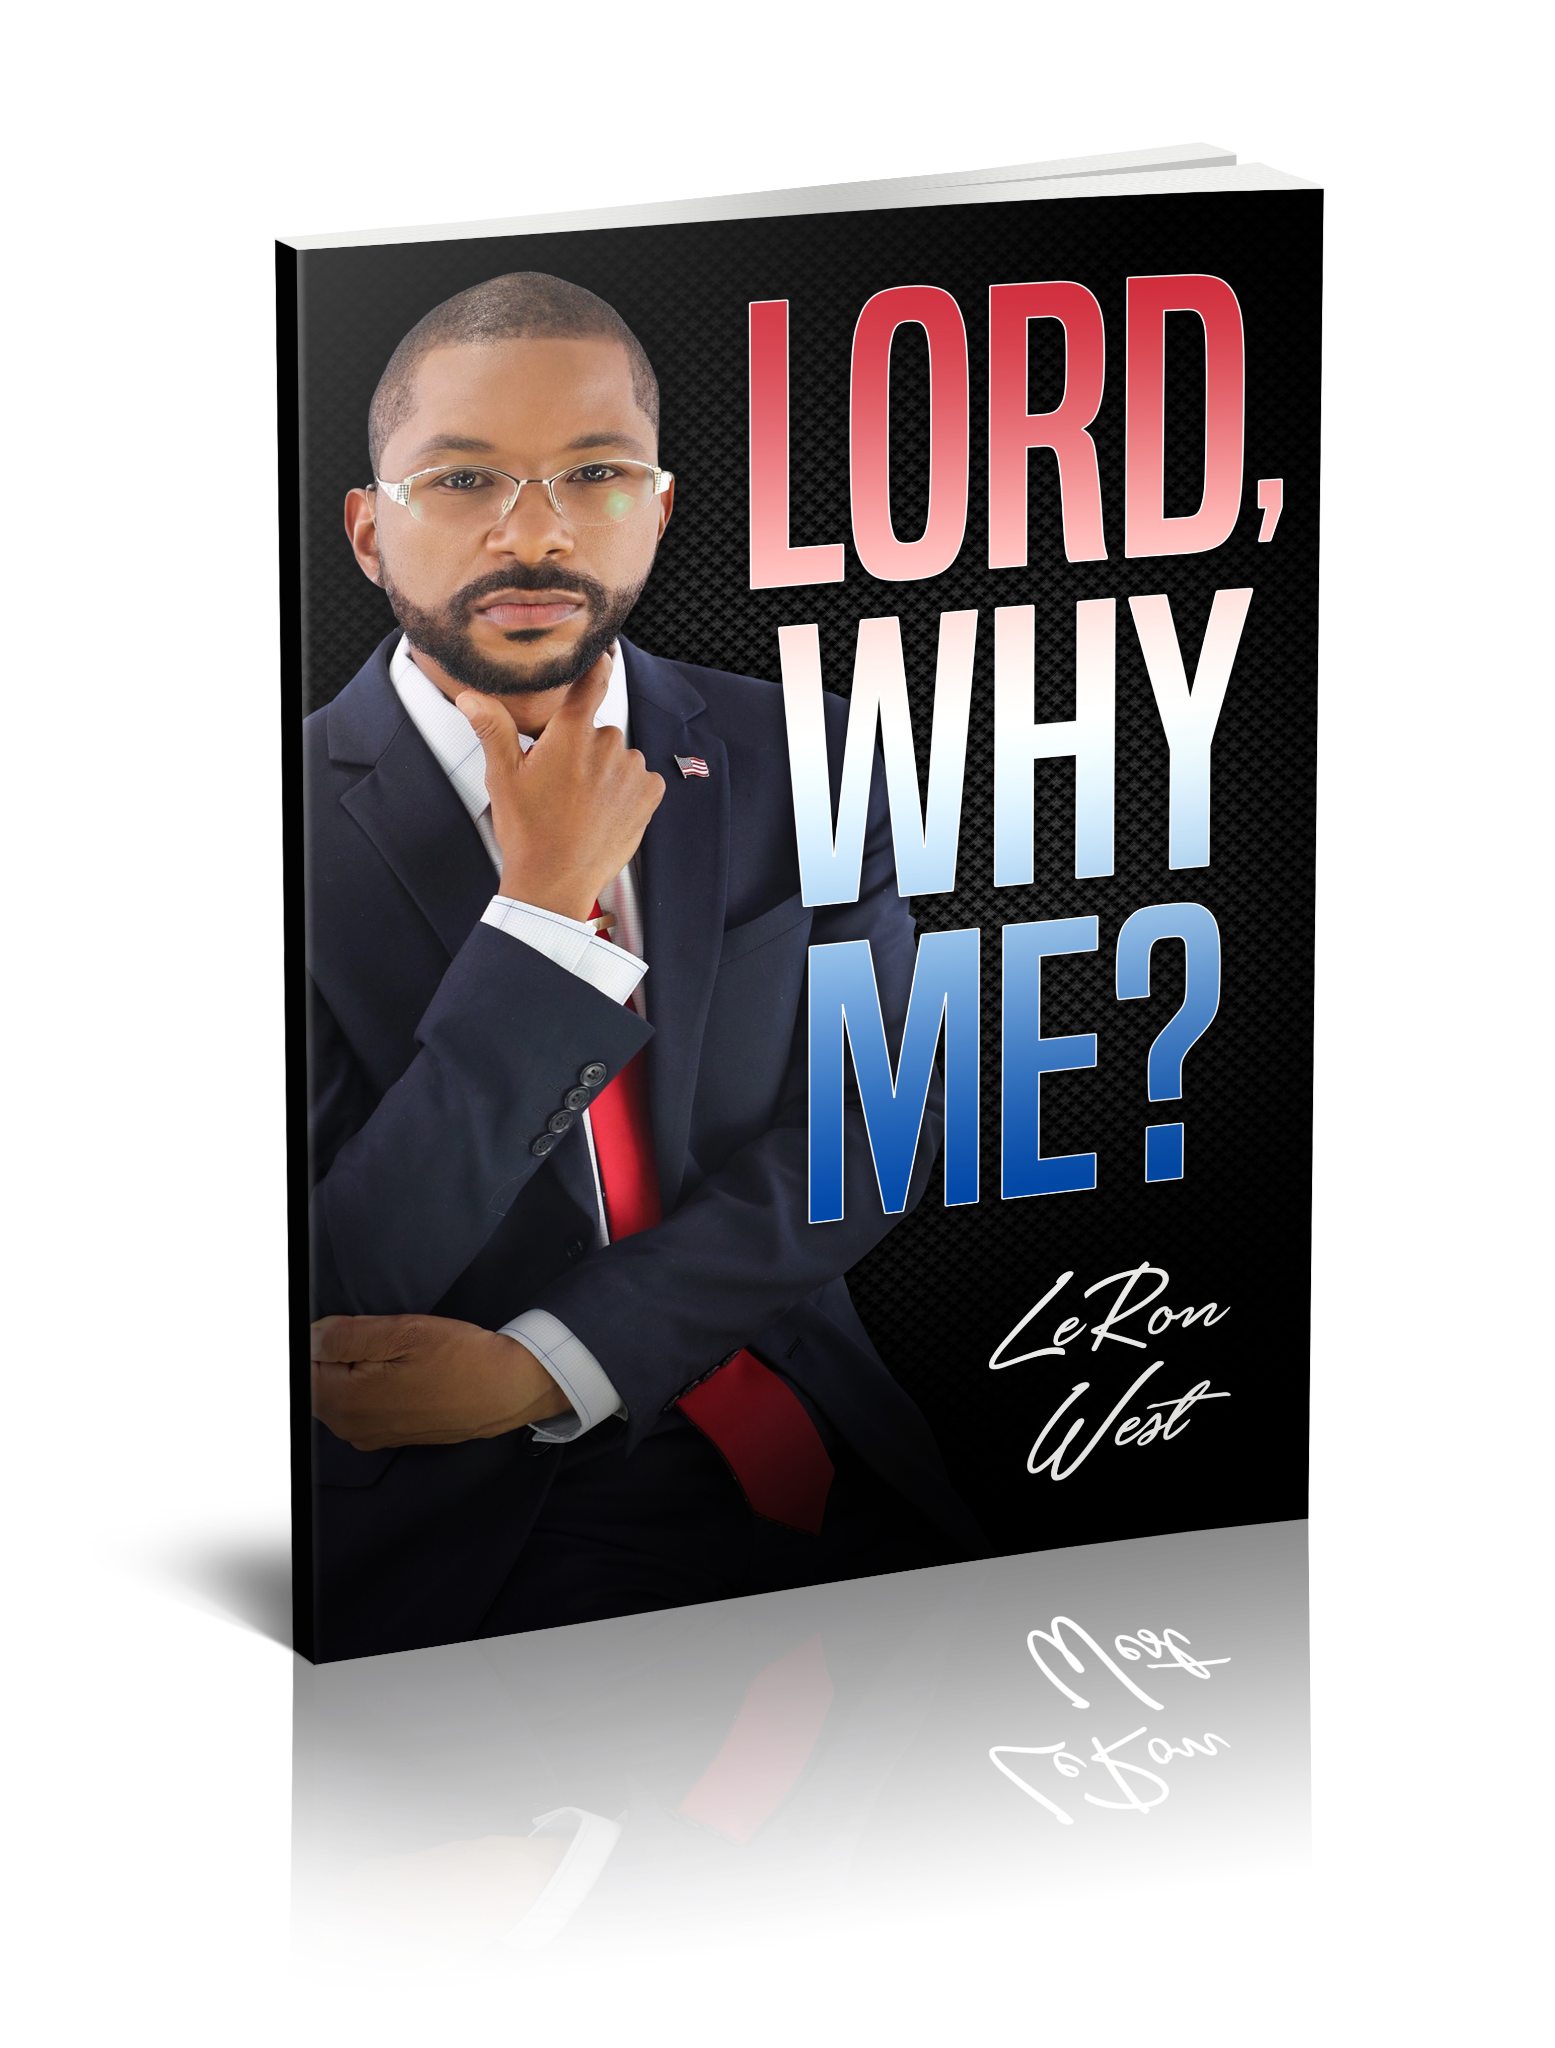 LORD, WHY ME? LeRon West